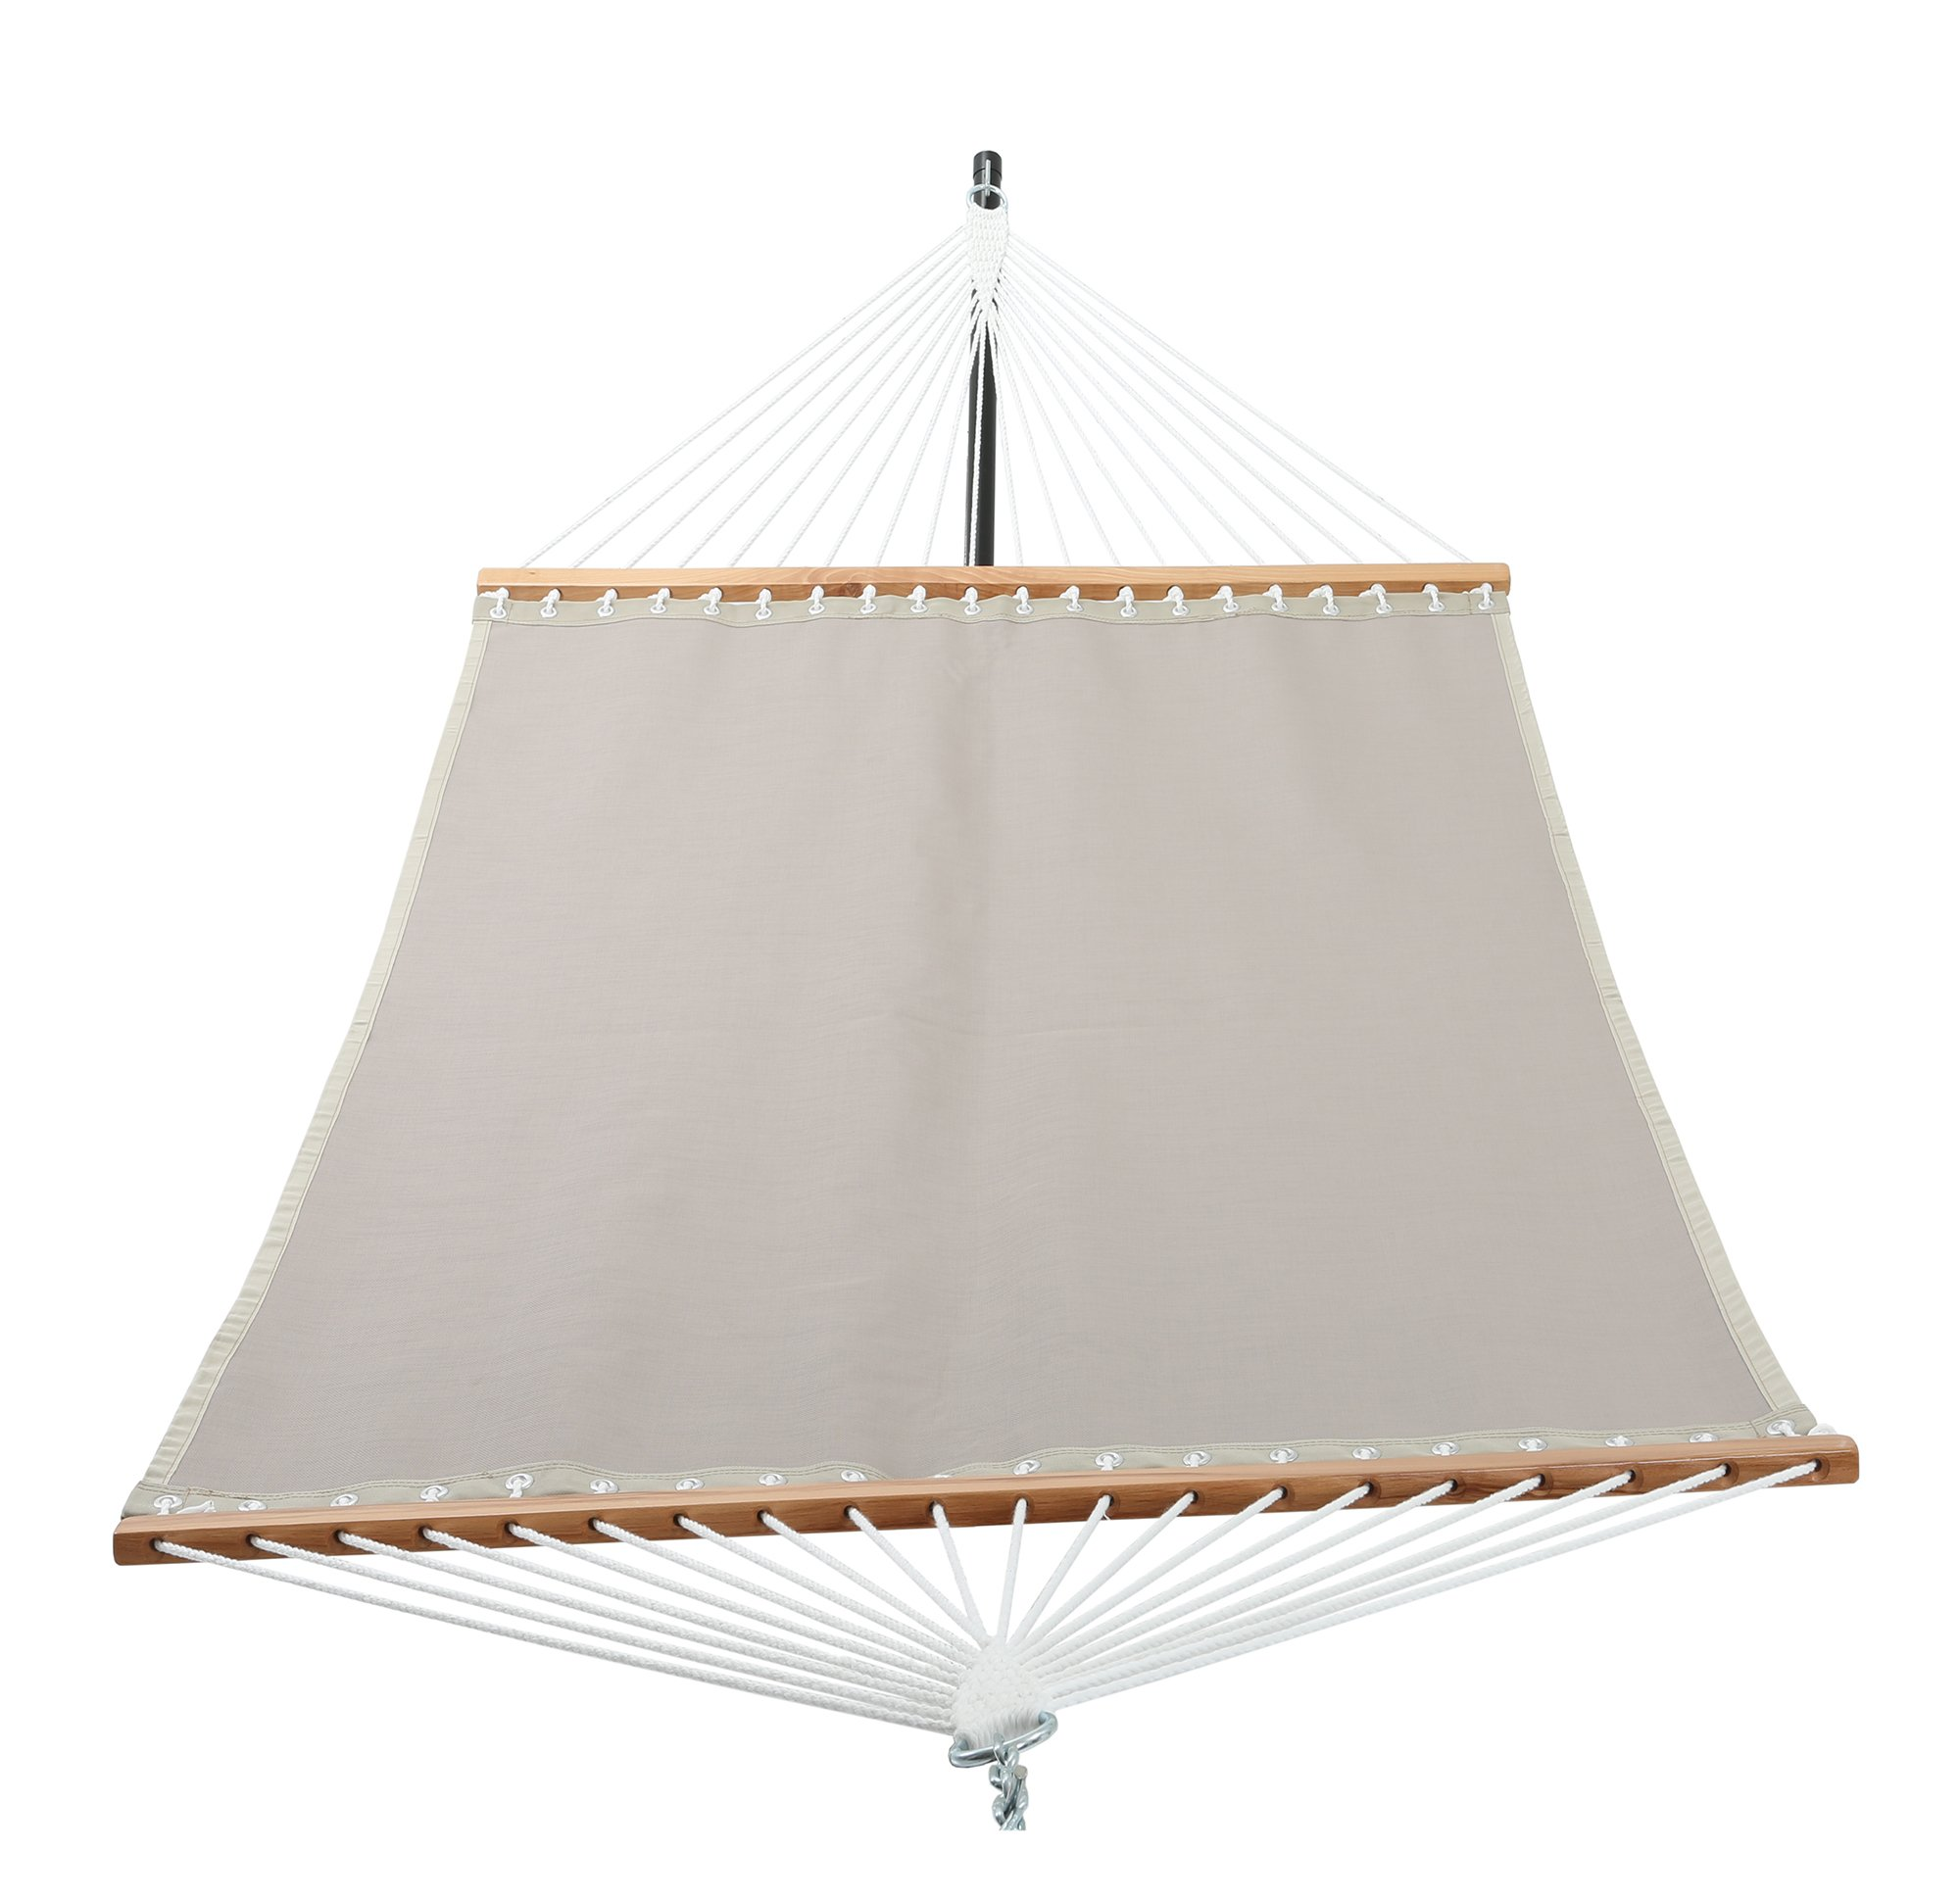 Patio Watcher 14 FT Quick Dry Hammock with Double Size Solid Wood Spreader Bar Outdoor Patio Yard Poolside Hammock with Chains, Waterproof and UV Resistance, 2 Person 450 Pound Capacity - Dimensions: Patio Watcher hammock is large enough to accommodate 2 person. The hammock bed size is 77 inch x 55 inch (195 cm x 140 cm), 11.25-foot from loop to loop, the total length is 14-feet with the steel chain link. This hammock is comfortable and high quality, it's designed to safely support a maximum capacity of 450 pounds. Durable Fabric: This Hammock is made of Textilene material that is soft, breathable, comfortable, weatherproof and oil proof. The fabric is vinyl coated for easy clean up and dry quickly. Easy to Use: There is a long wooden bar at each end with drilled out holes spaced throughout for the support ropes to go through. Each rope is super thick and braided for maximum durability and support. The 20 ropes collect together and weave into a very pretty triangle pattern, which attaches to a ring and the chain-link can be used for hanging the hammock. - patio-furniture, patio, hammocks - 71ImF%2BpyuBL -